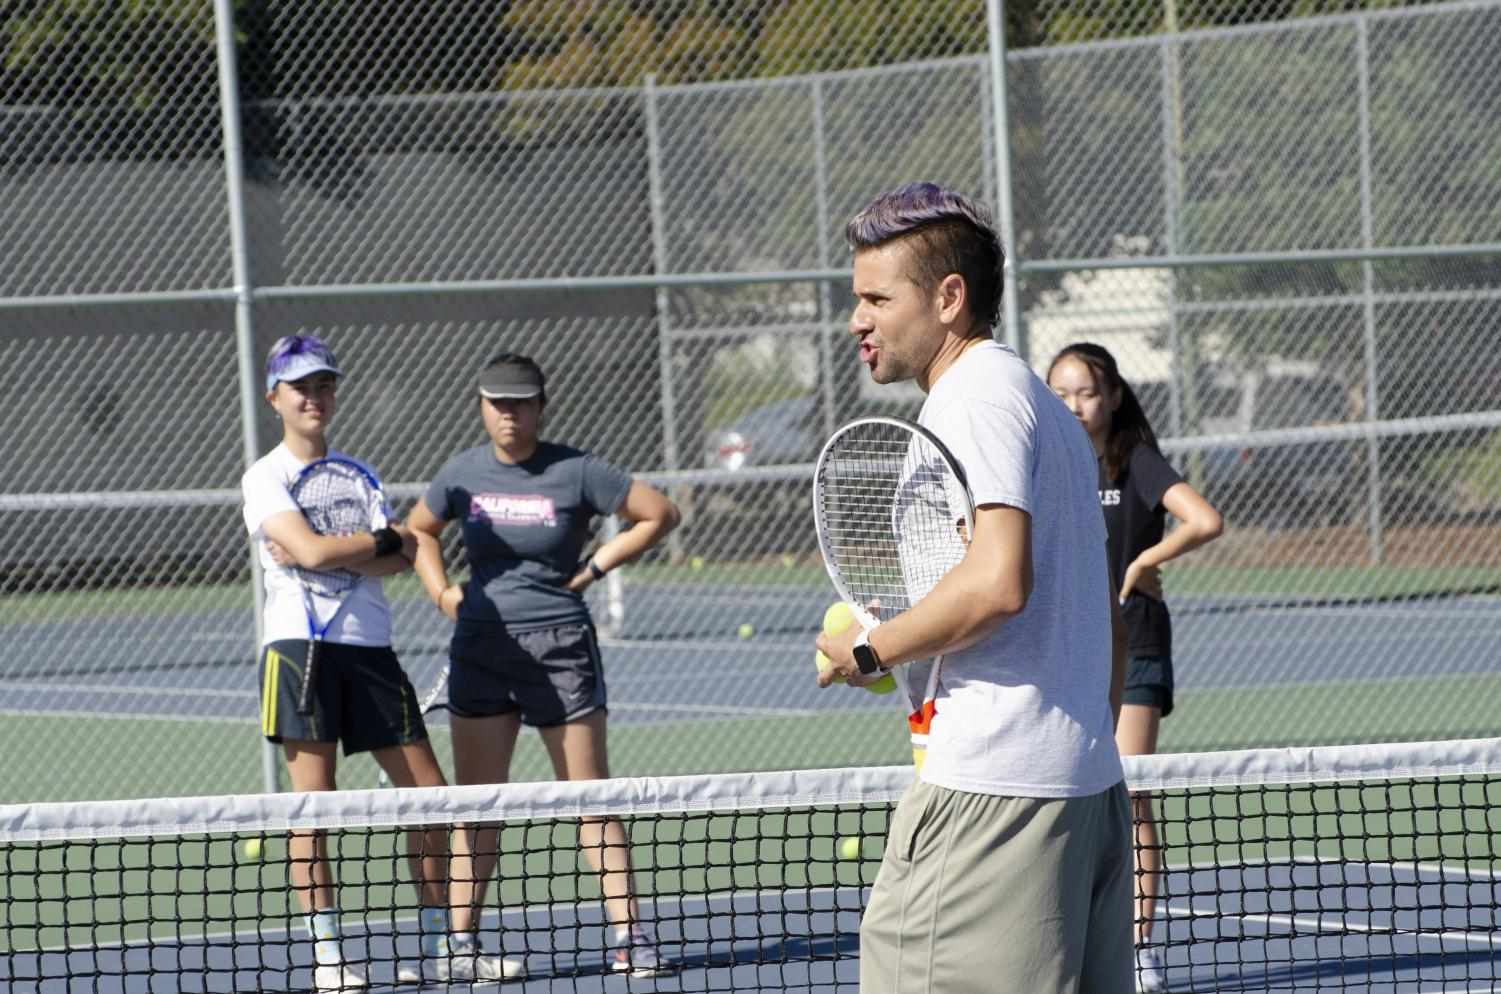 Assistant+coach+John+Paul+Fruttero+talks+to+the+girls+tennis+team%2C+going+over+a+specific+drill.+%E2%80%9CIt%E2%80%99s+a+lot+of+work%2C+because+we+have+practice+every+day+for+two+hours%2C%E2%80%9D+freshman+Alissa+Huda+said+of+tennis+practices.+%E2%80%9CBut+%5Bthere%E2%80%99s%5D+been+a+lot+of+team+bonding%2C+and+%5Bwe+have+become%5D+a+lot+closer.%E2%80%9D+